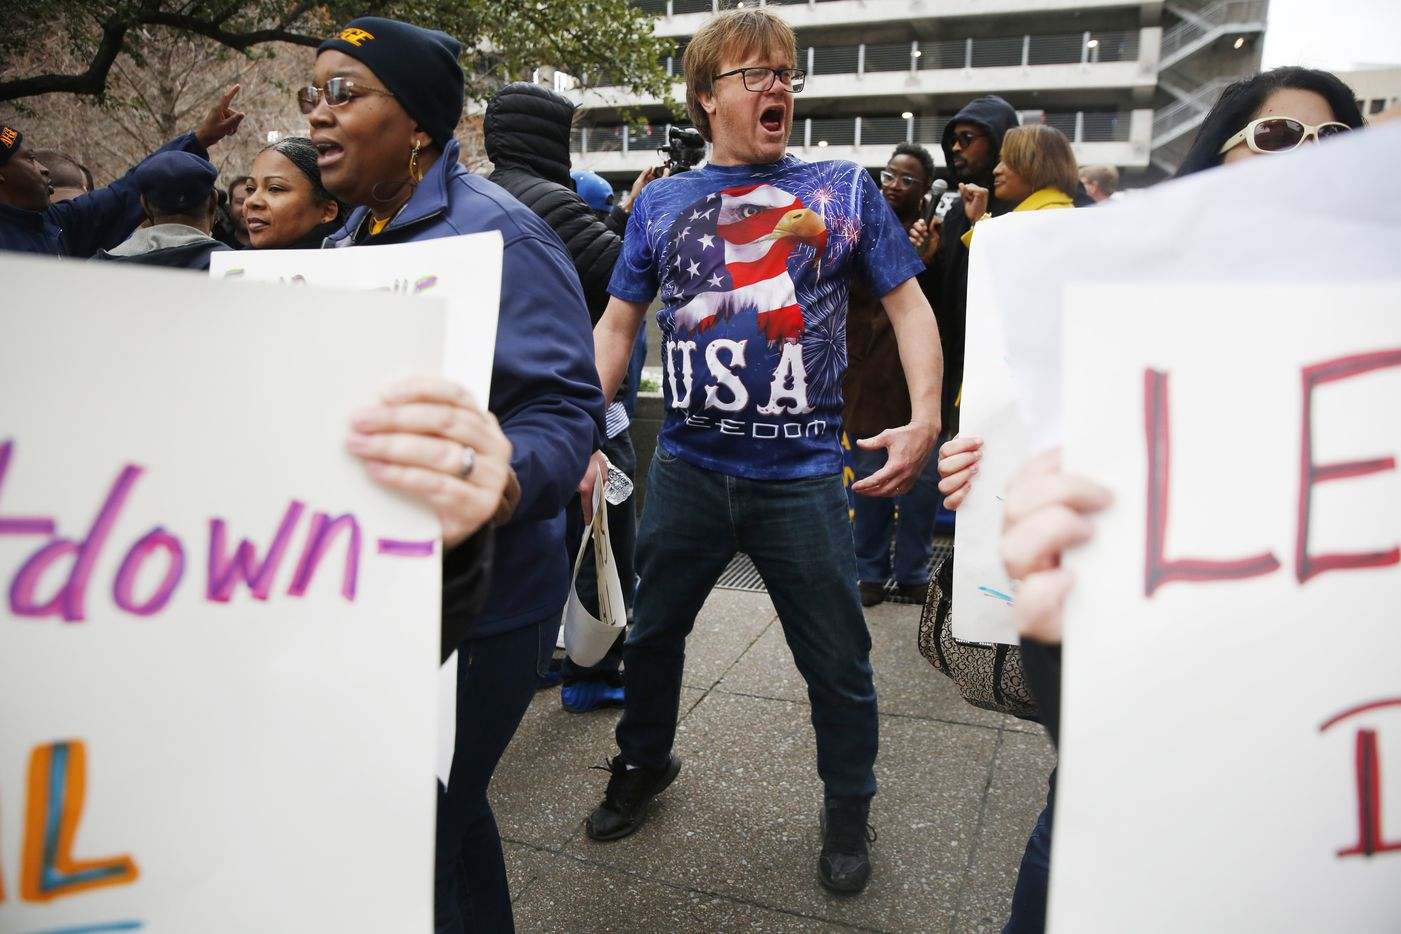 Charles Hermes yells during a rally protesting the partial government shutdown in downtown Dallas.